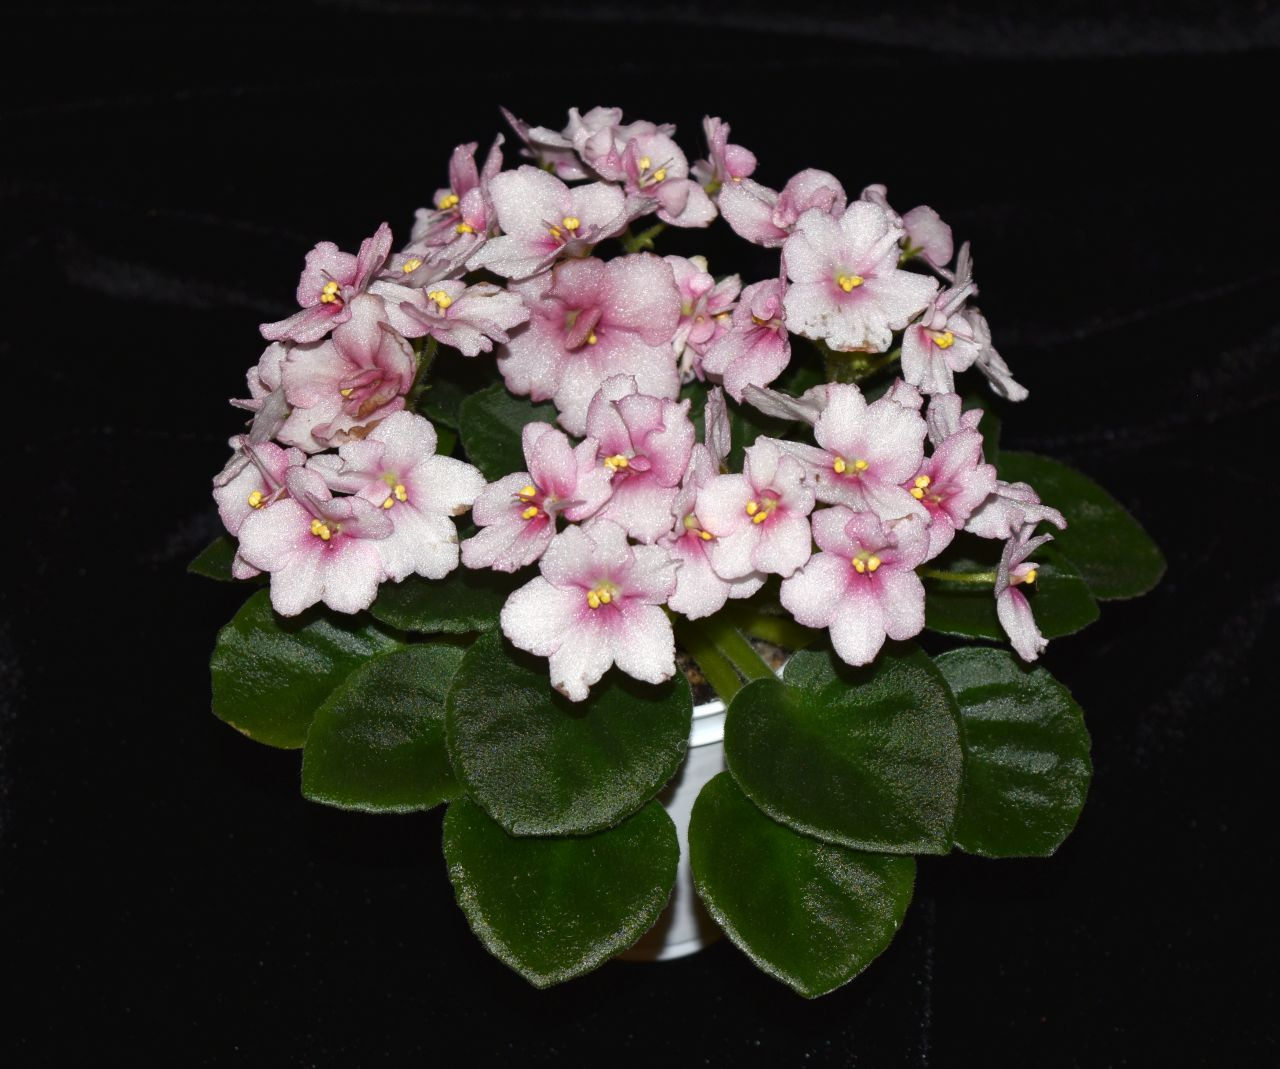 """2017 Convention<br>Old World African Gesneriads in Flower <br>Class 22B – <i>Saintpaulia</i> hybrids or cultivars classified as semi-miniatures (max of 8"""" diameter)"""